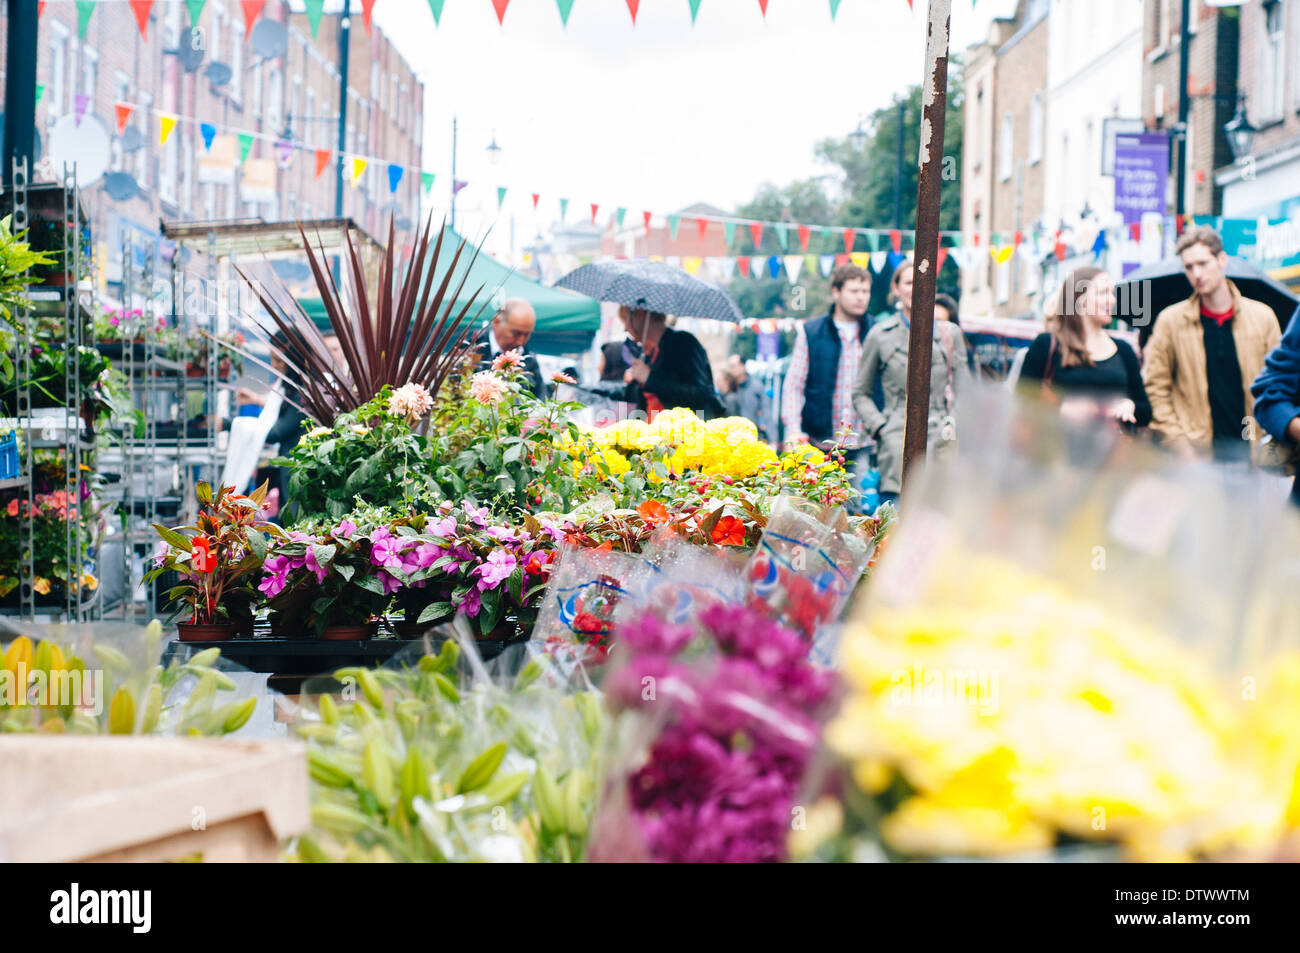 People out at Columbia Road market in east london with flowers in the foreground - Stock Image